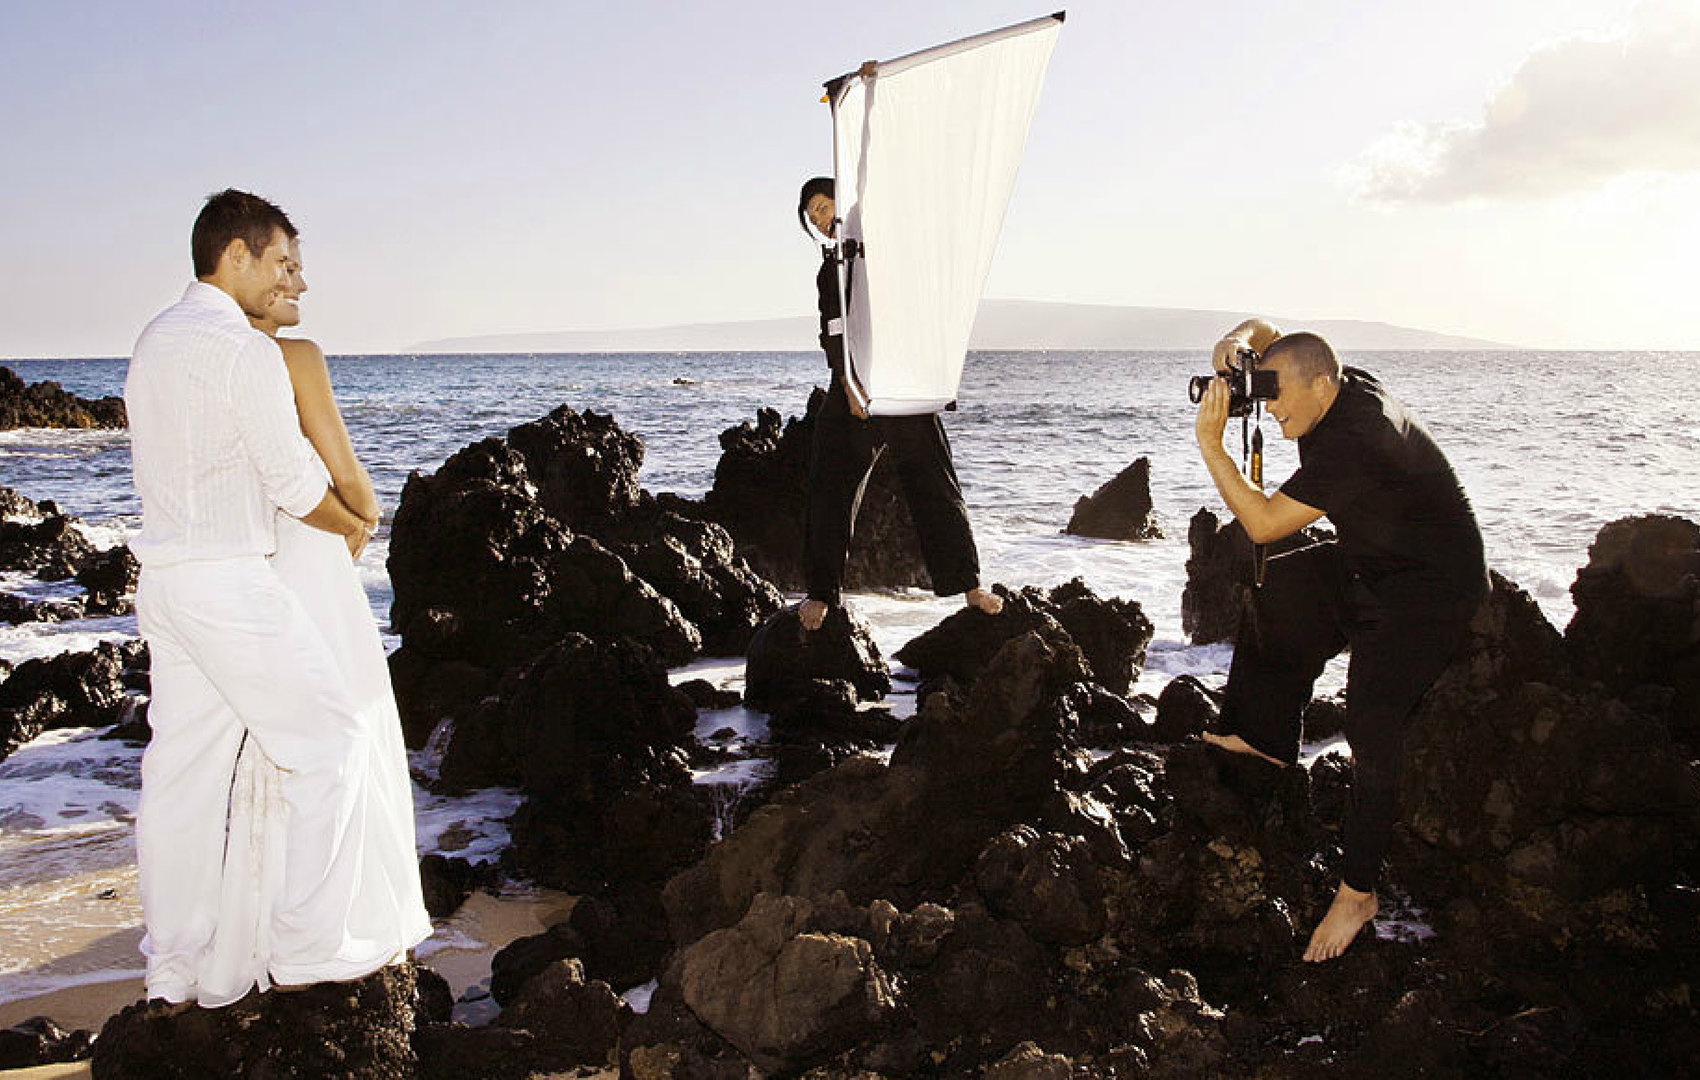 Behind the scenes photographers on Maui